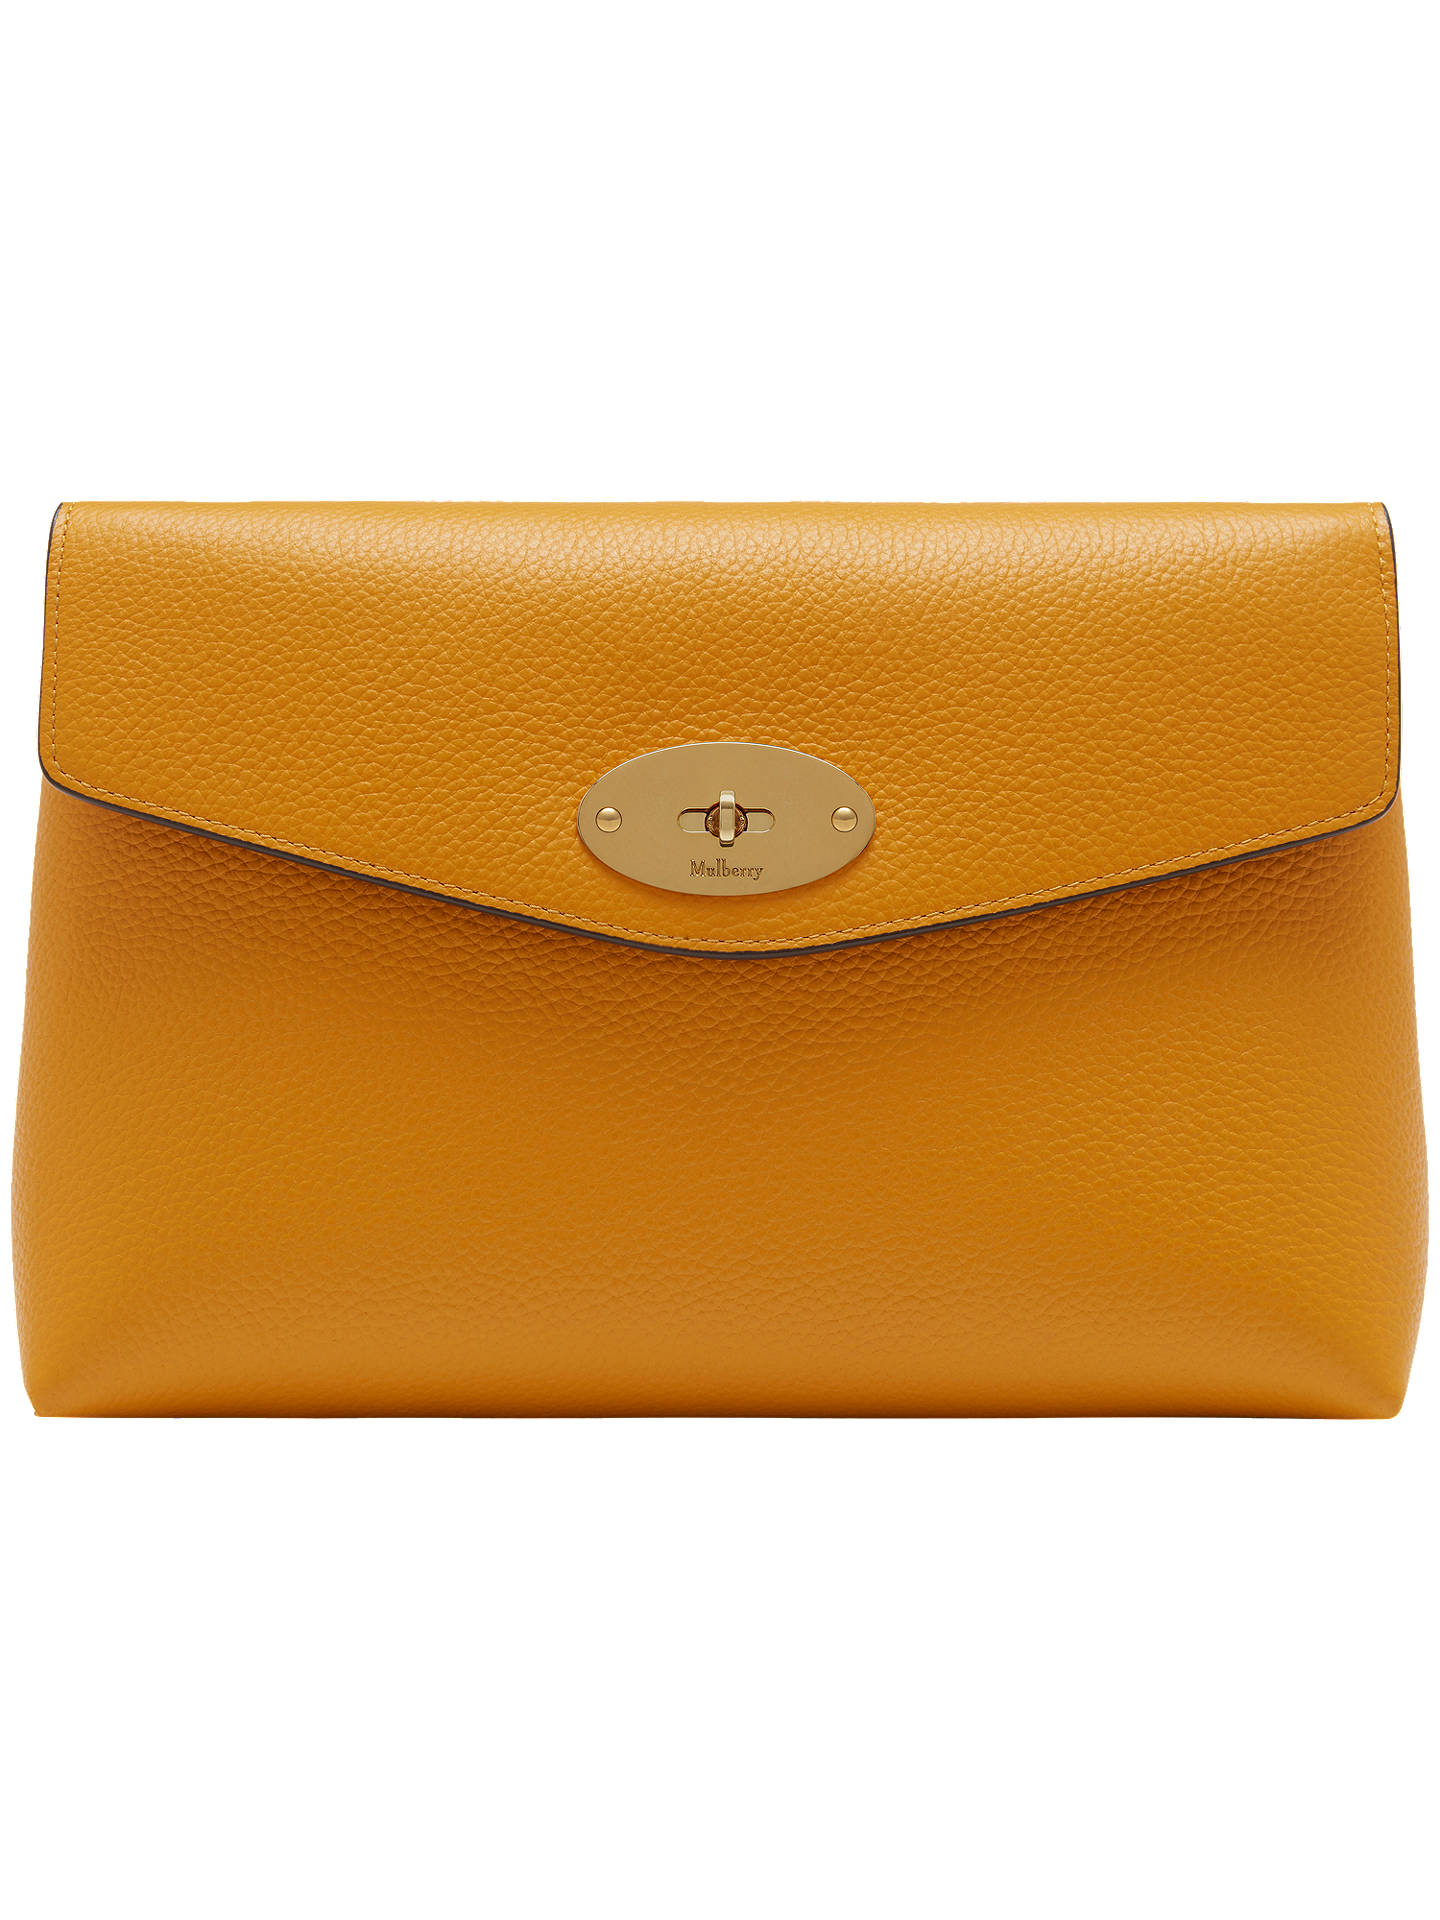 0c590dd40b netherlands mulberry yellow leather handbag lily a6498 f756c; get  buymulberry darley small classic grain large cosmetics pouch deep amber  online at ...